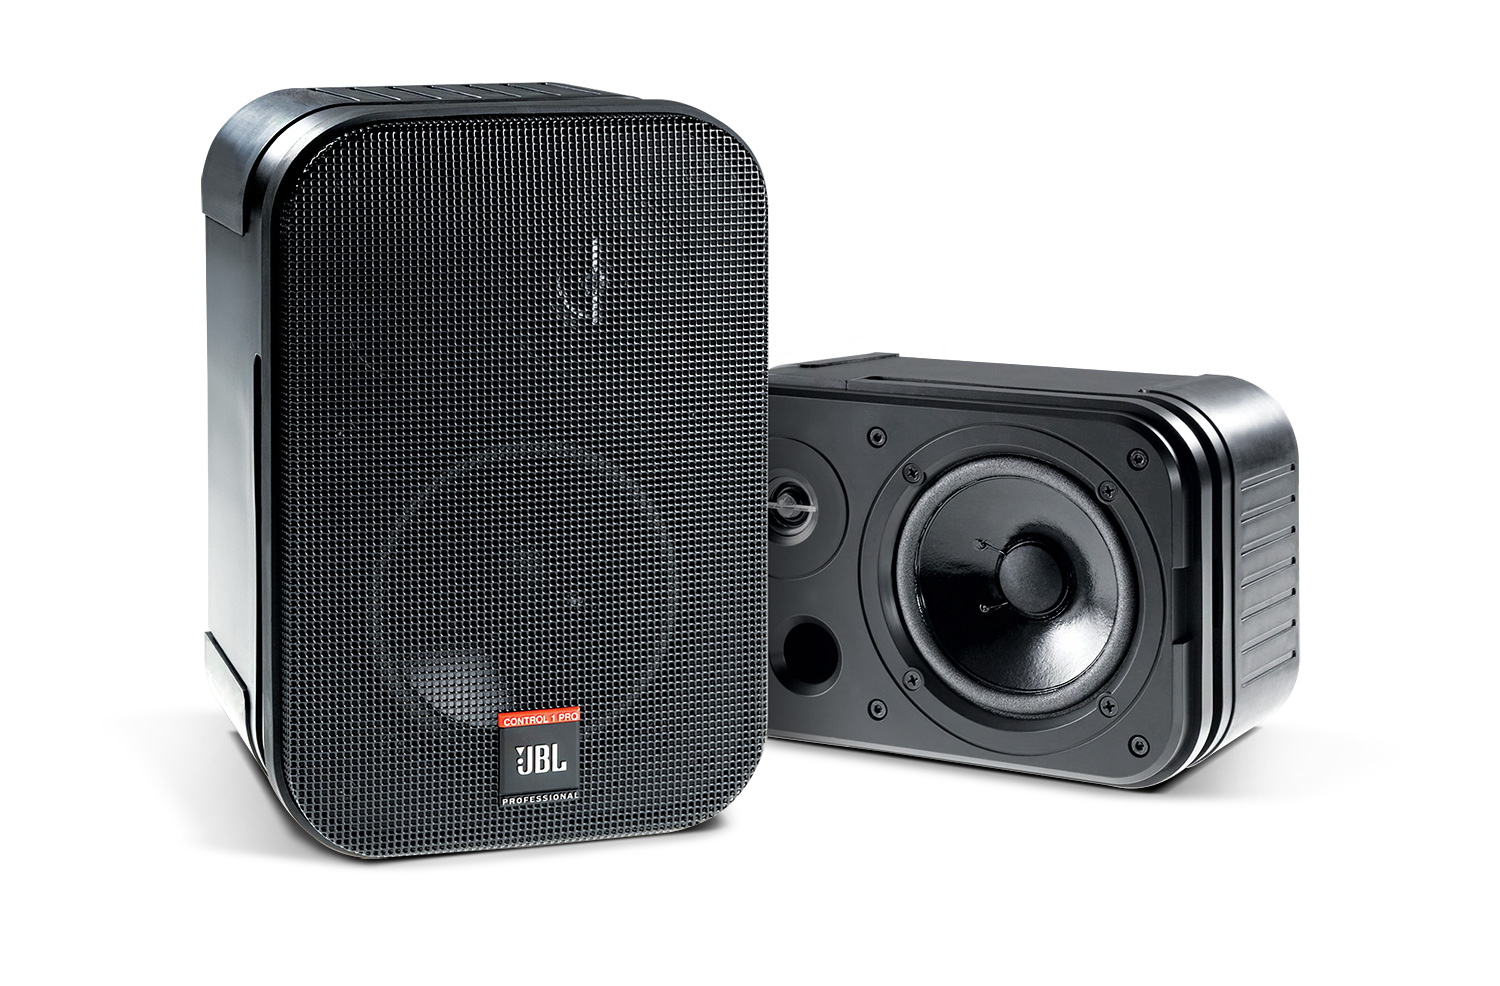 JBL Professional C1PRO High Performance 2-Way Loudspeaker - Best For Performing Heavy Bass